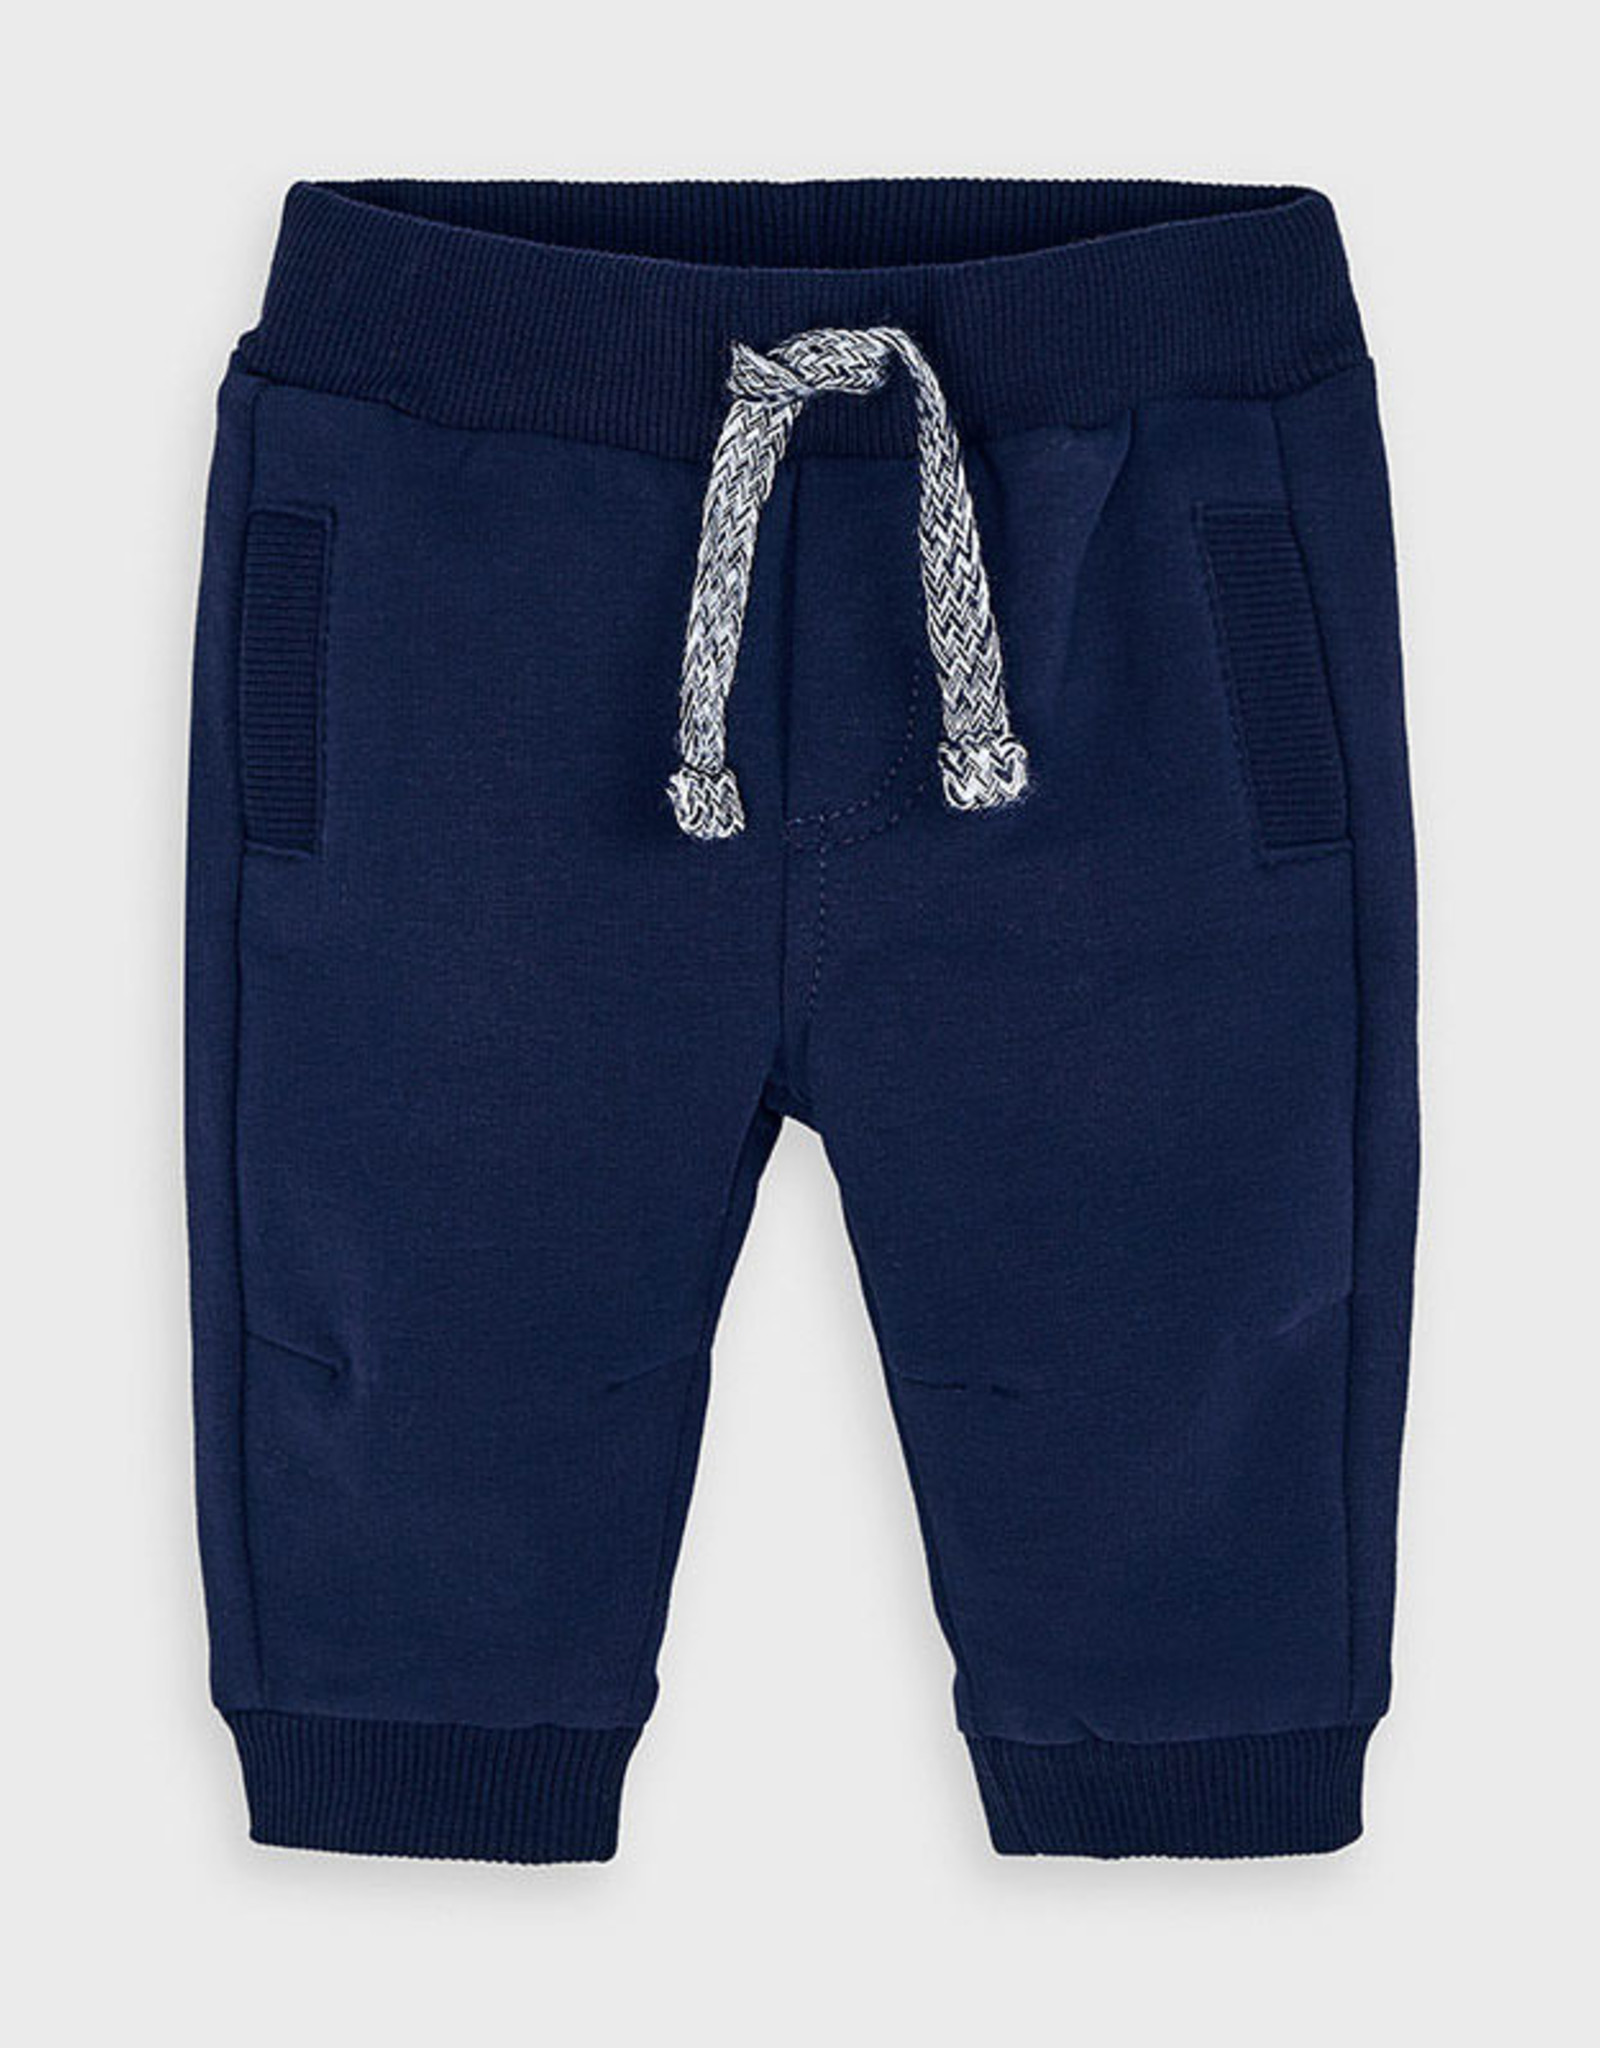 Mayoral FA20 Navy Sweatpants